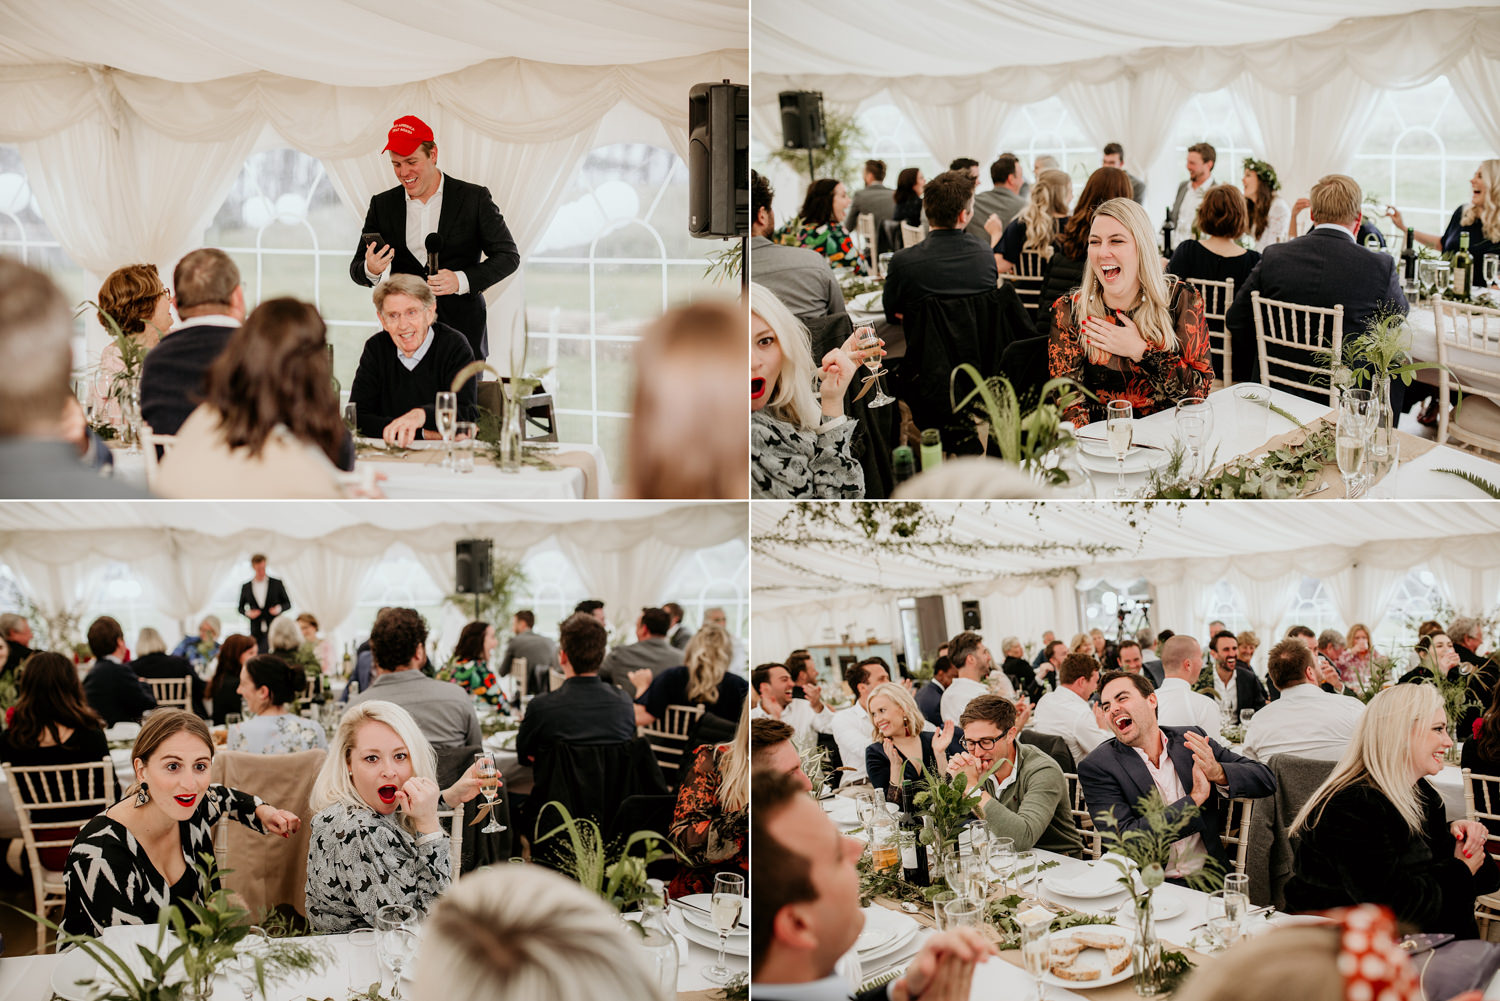 wedding speeches during the marquee wedding at Harvest Moon Weddings